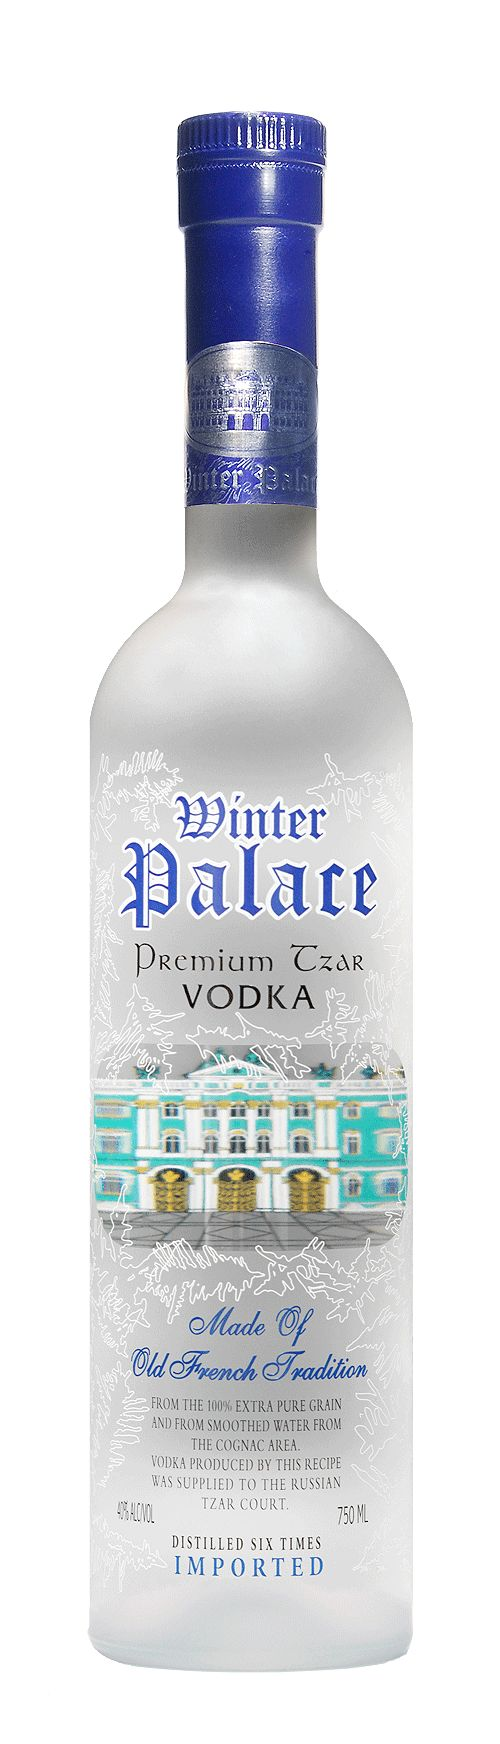 Winter Palace Vodka Vodka from Russian Federation seeking for distributors - Beverage Trade Network